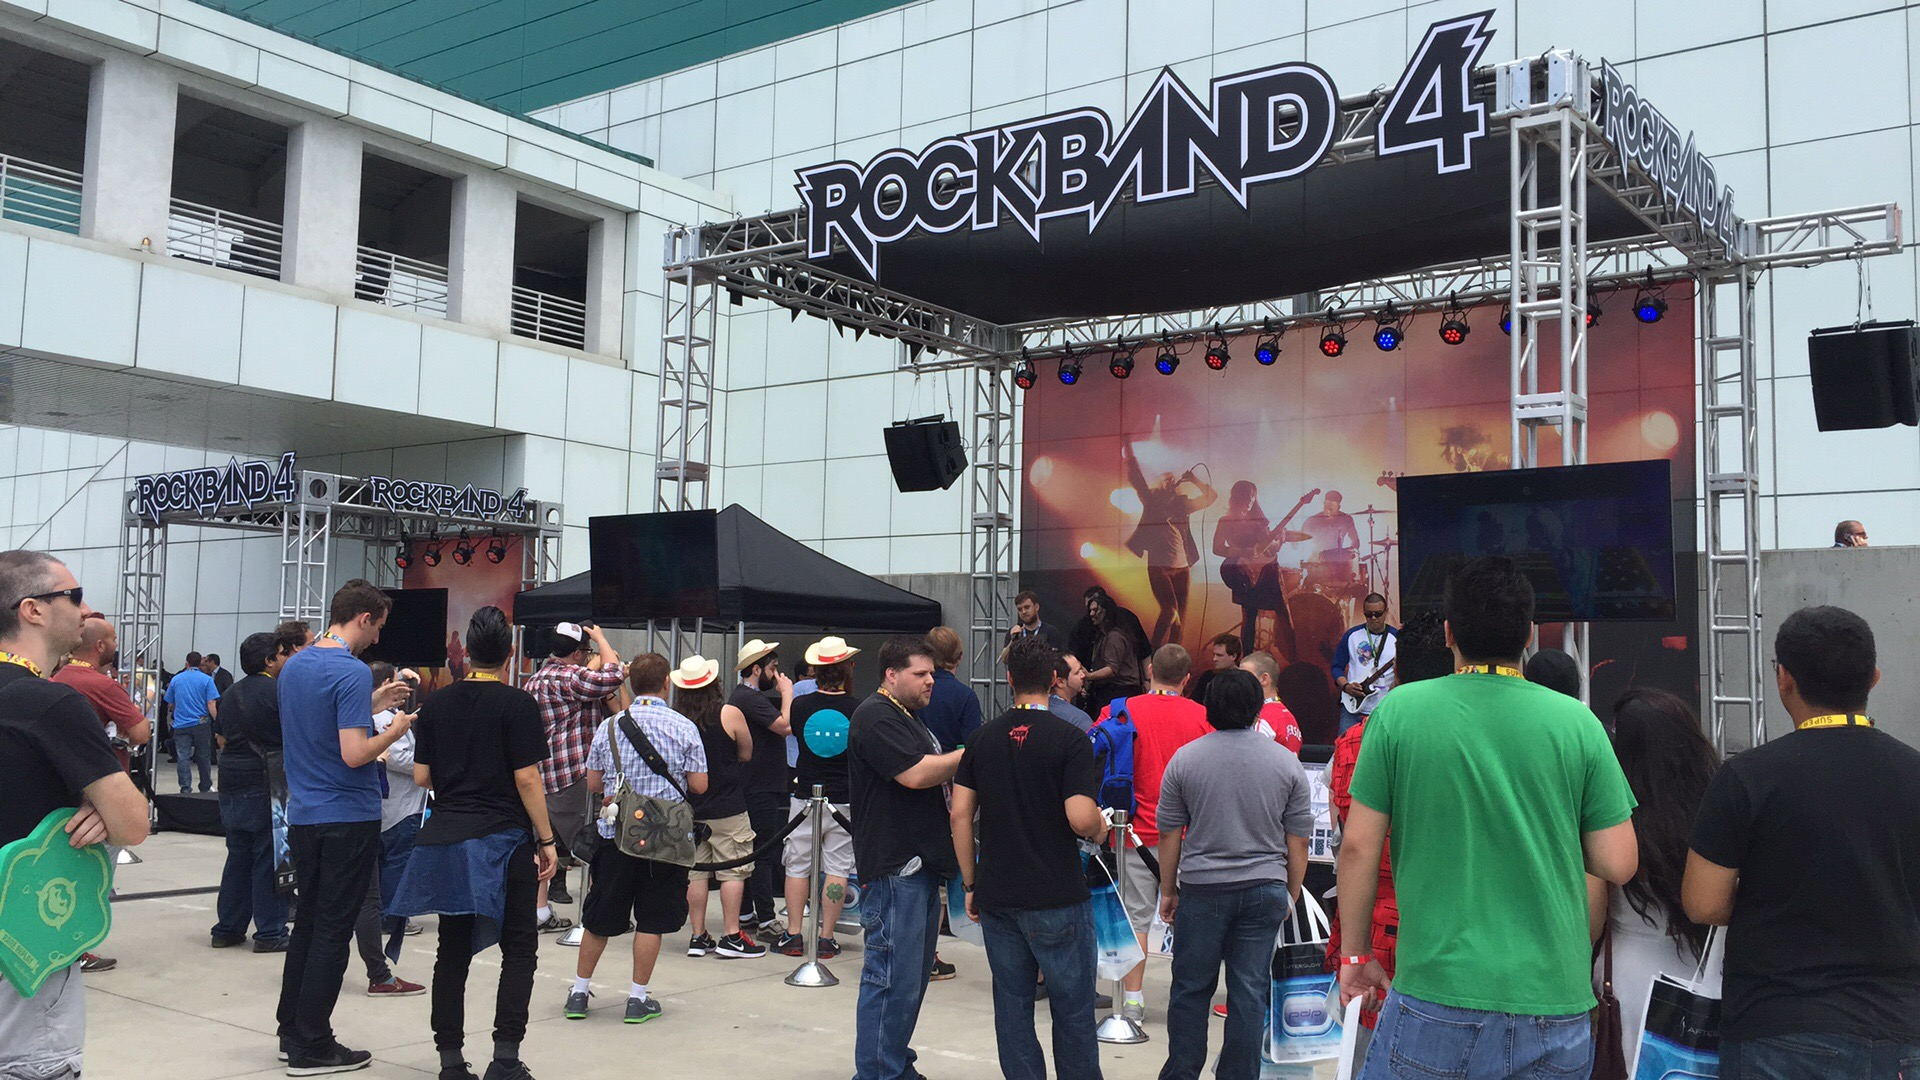 Rock Band 4 Outdoor Stage